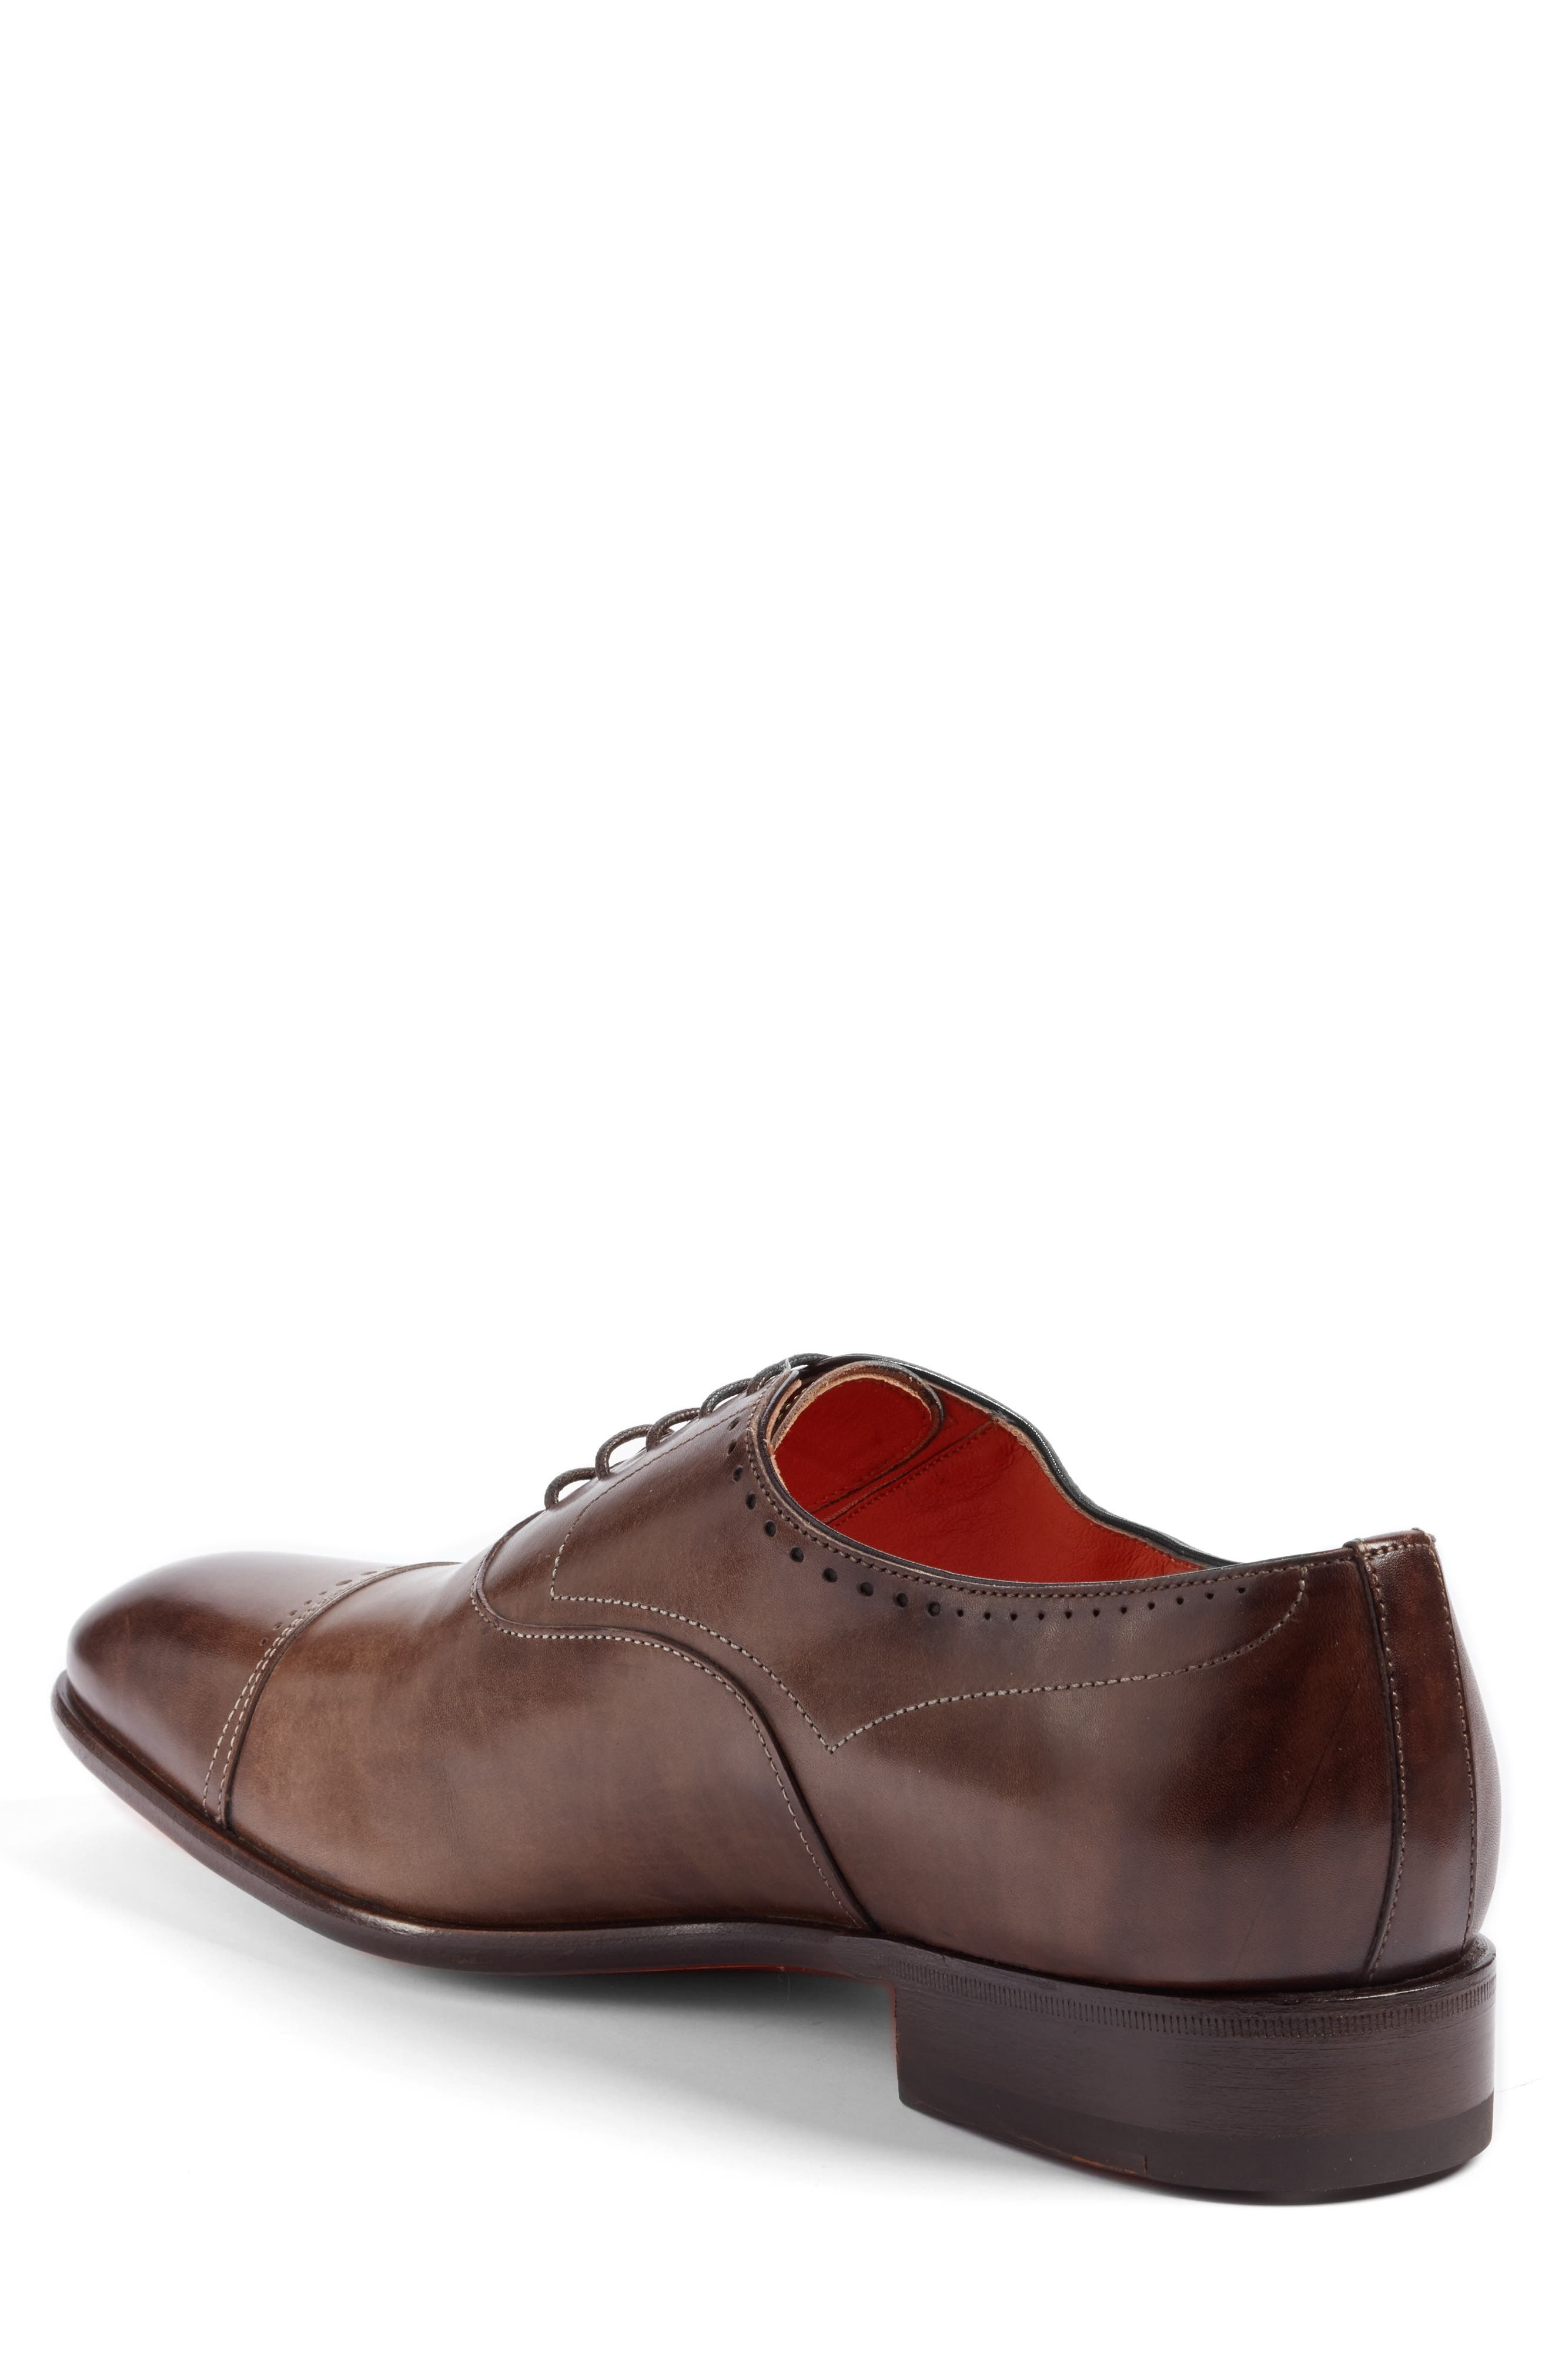 Thurman Cap Toe Oxford,                             Alternate thumbnail 2, color,